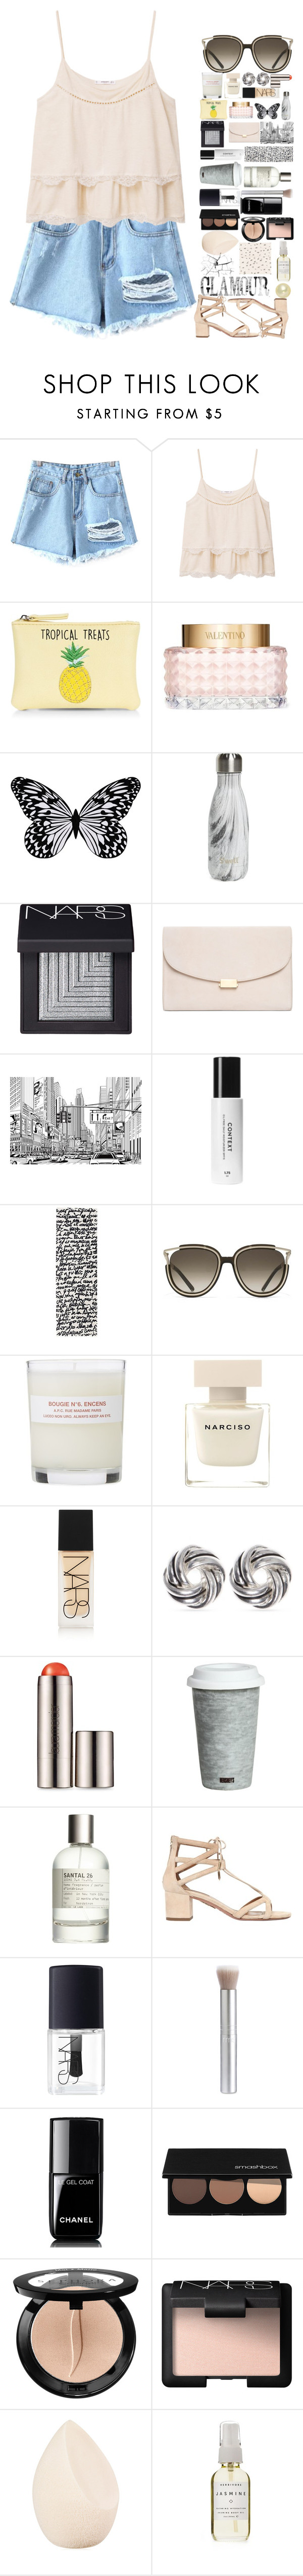 """""""peach top"""" by retro-obsessed ❤ liked on Polyvore featuring Chicnova Fashion, MANGO, New Look, Valentino, Visionnaire, S'well, NARS Cosmetics, Mansur Gavriel, nanimarquina and Chloé"""